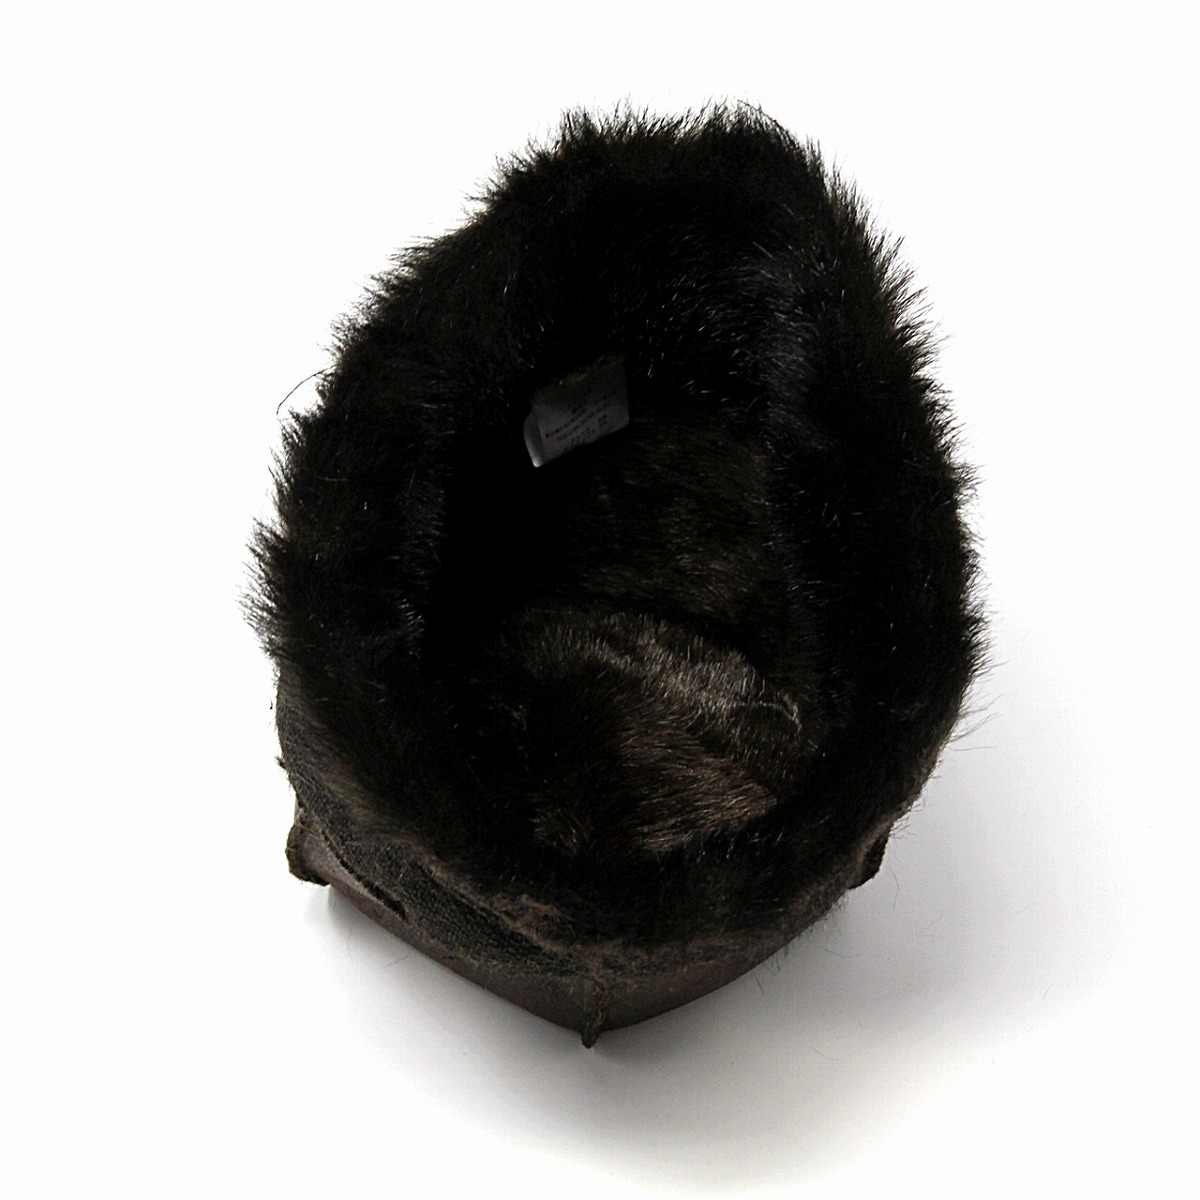 638bdd4dc ROBERTidea Russia hat hat fur Roberto idea Russian hat Lady's hat tea brown  (Christmas gift packing lapping free of charge) in the fall and winter